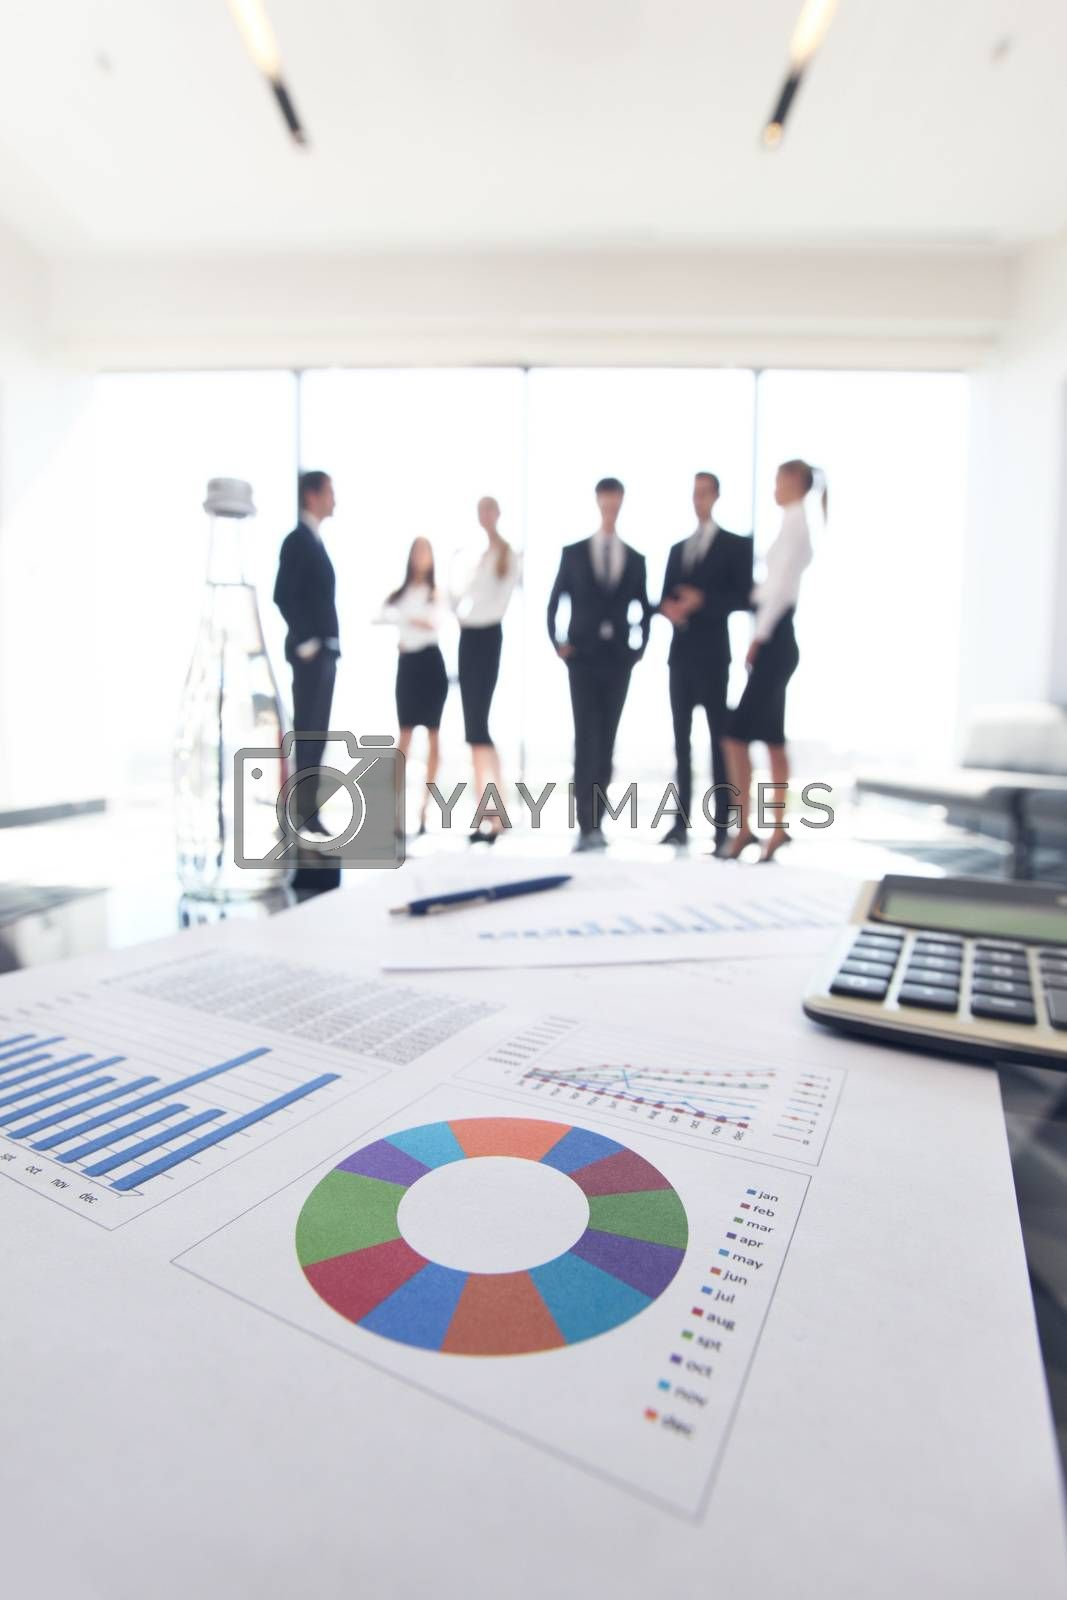 Close up view of printed graphs and business people discussing financial data